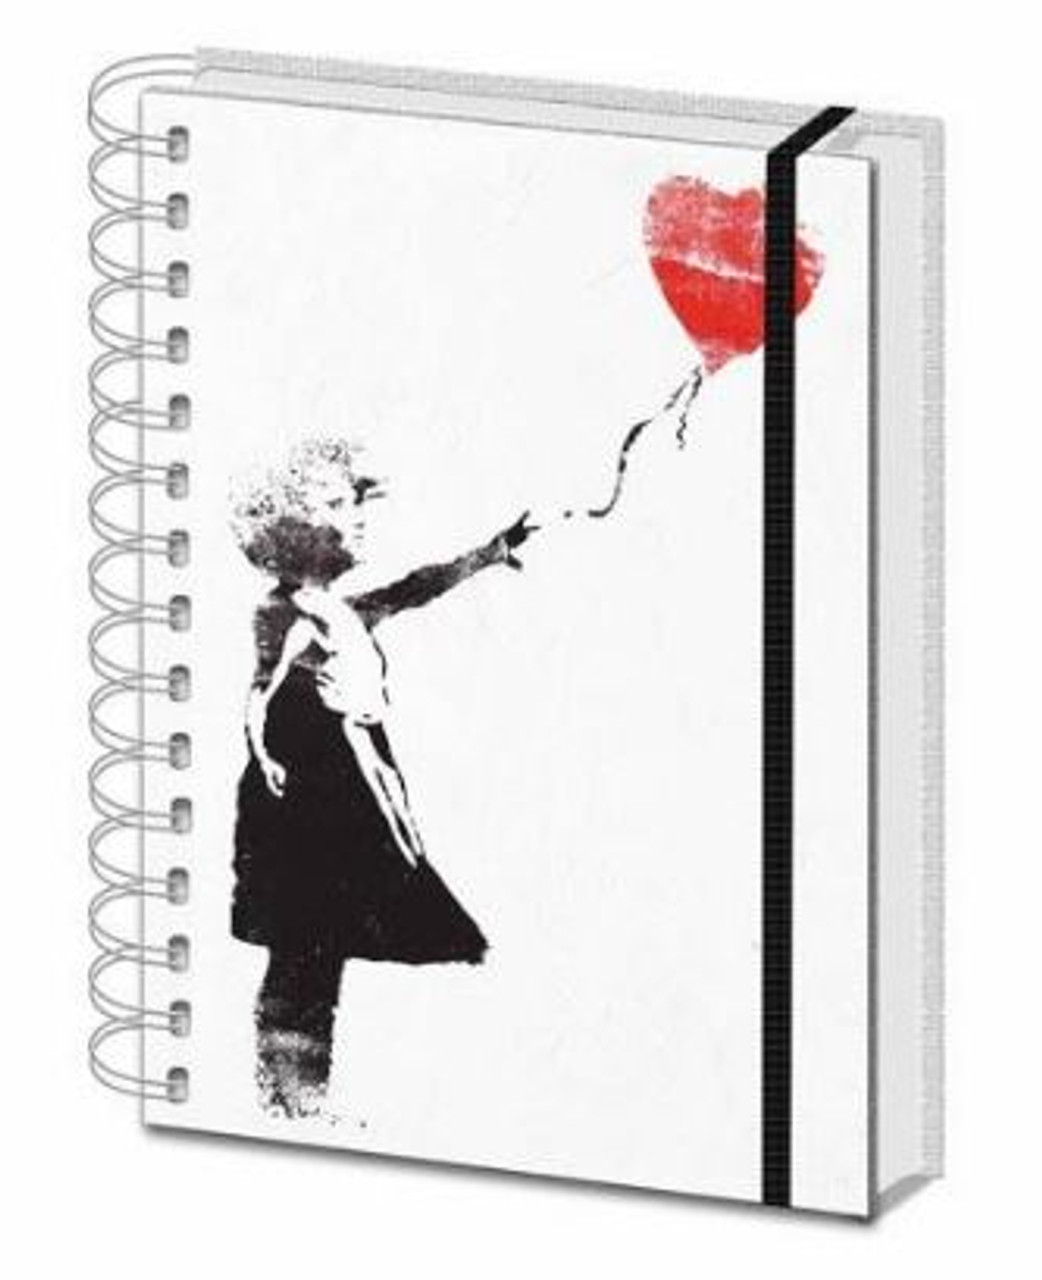 Banksy - Balloon Girl - Spiral Notebook (A5)